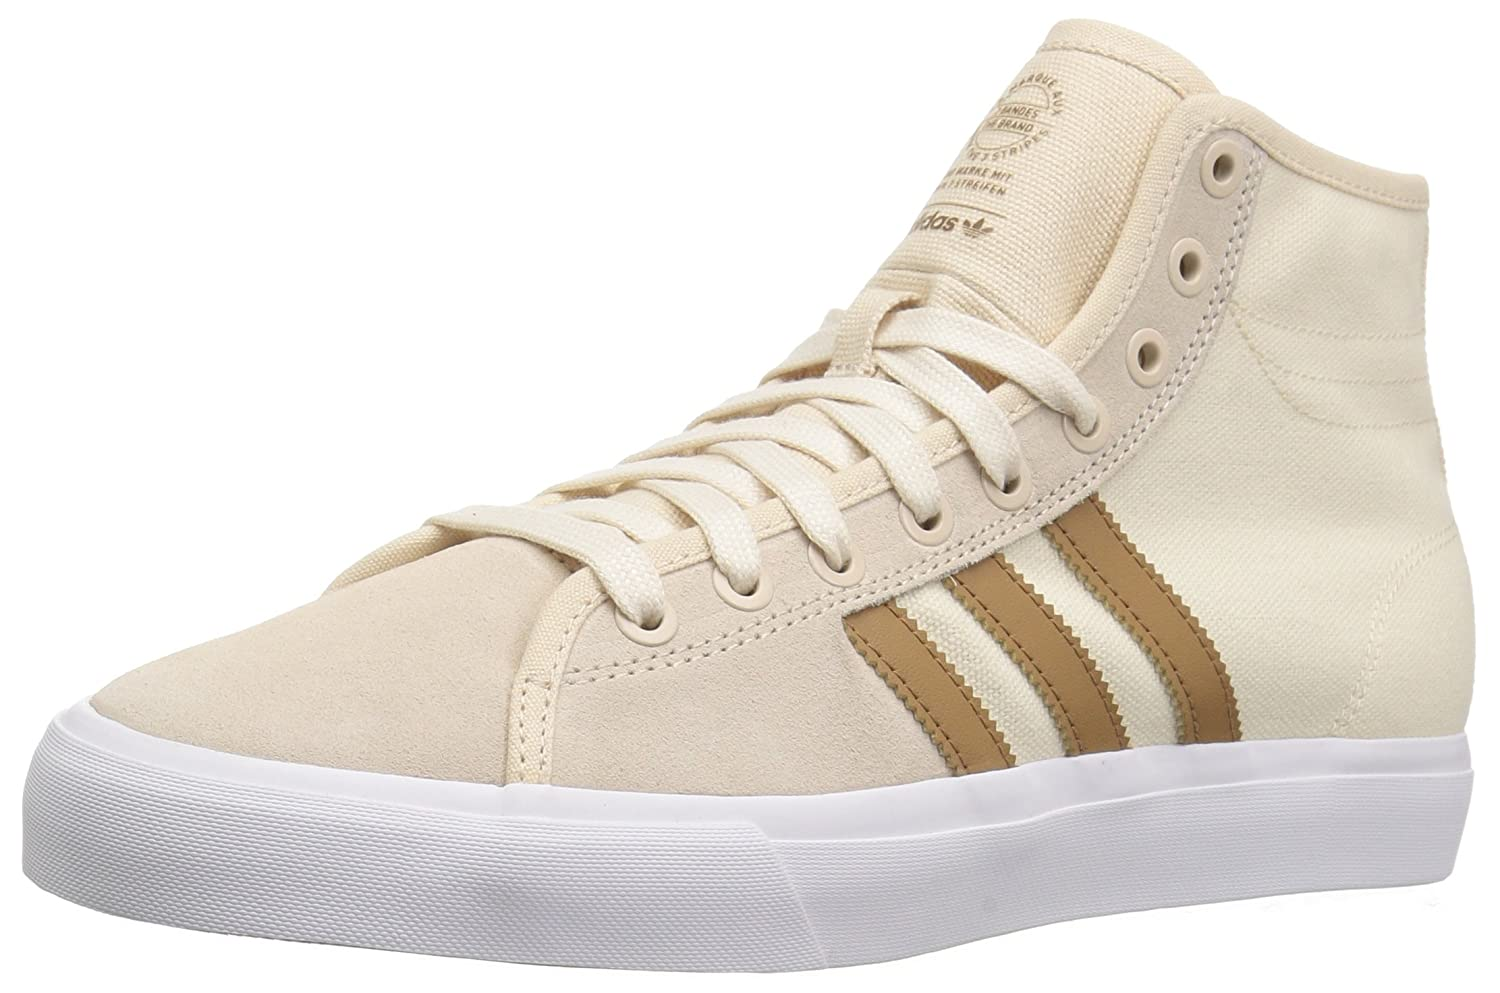 adidas Originals Men's Matchcourt High Rx Skate Shoe 11 D(M) US|Linen/Raw Desert/Ecru Tint